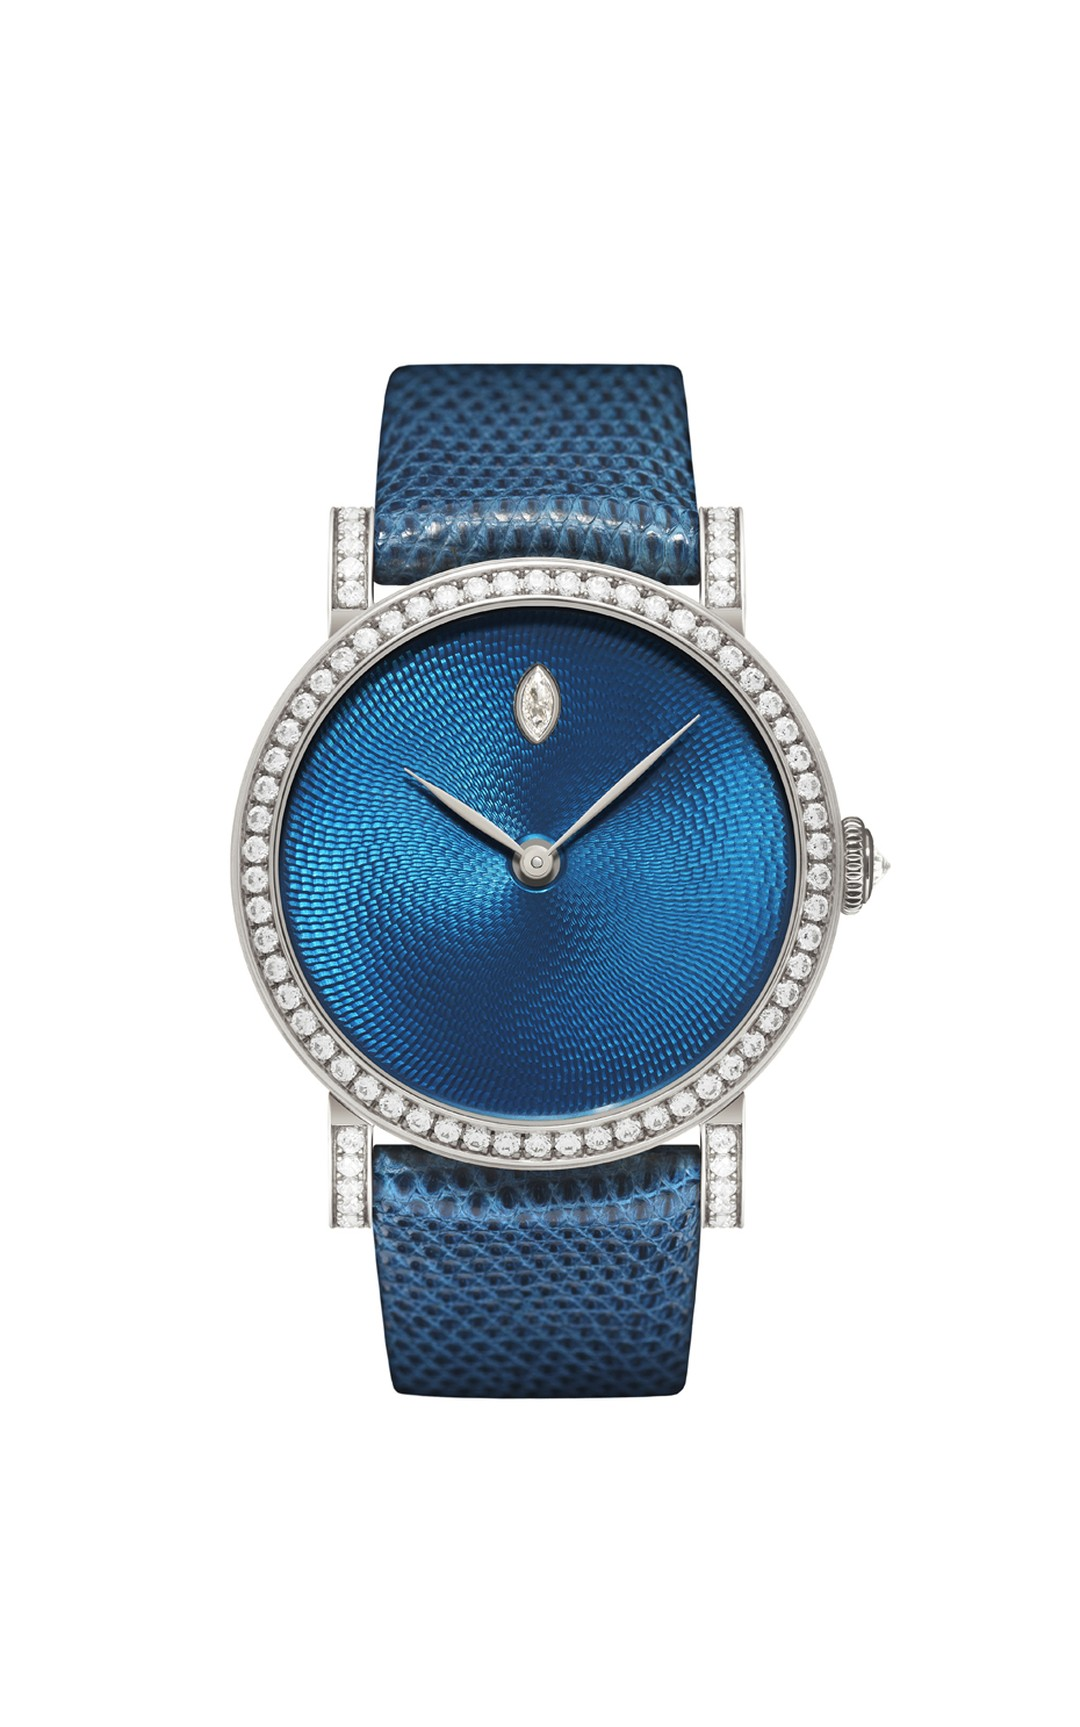 One-of-a-kind DeLaneau Rondo Transluscent Blue watch in white gold with Grand Feu enamel on a Rosette Guilloché dial, set with diamonds on the bezel, crown and buckle.